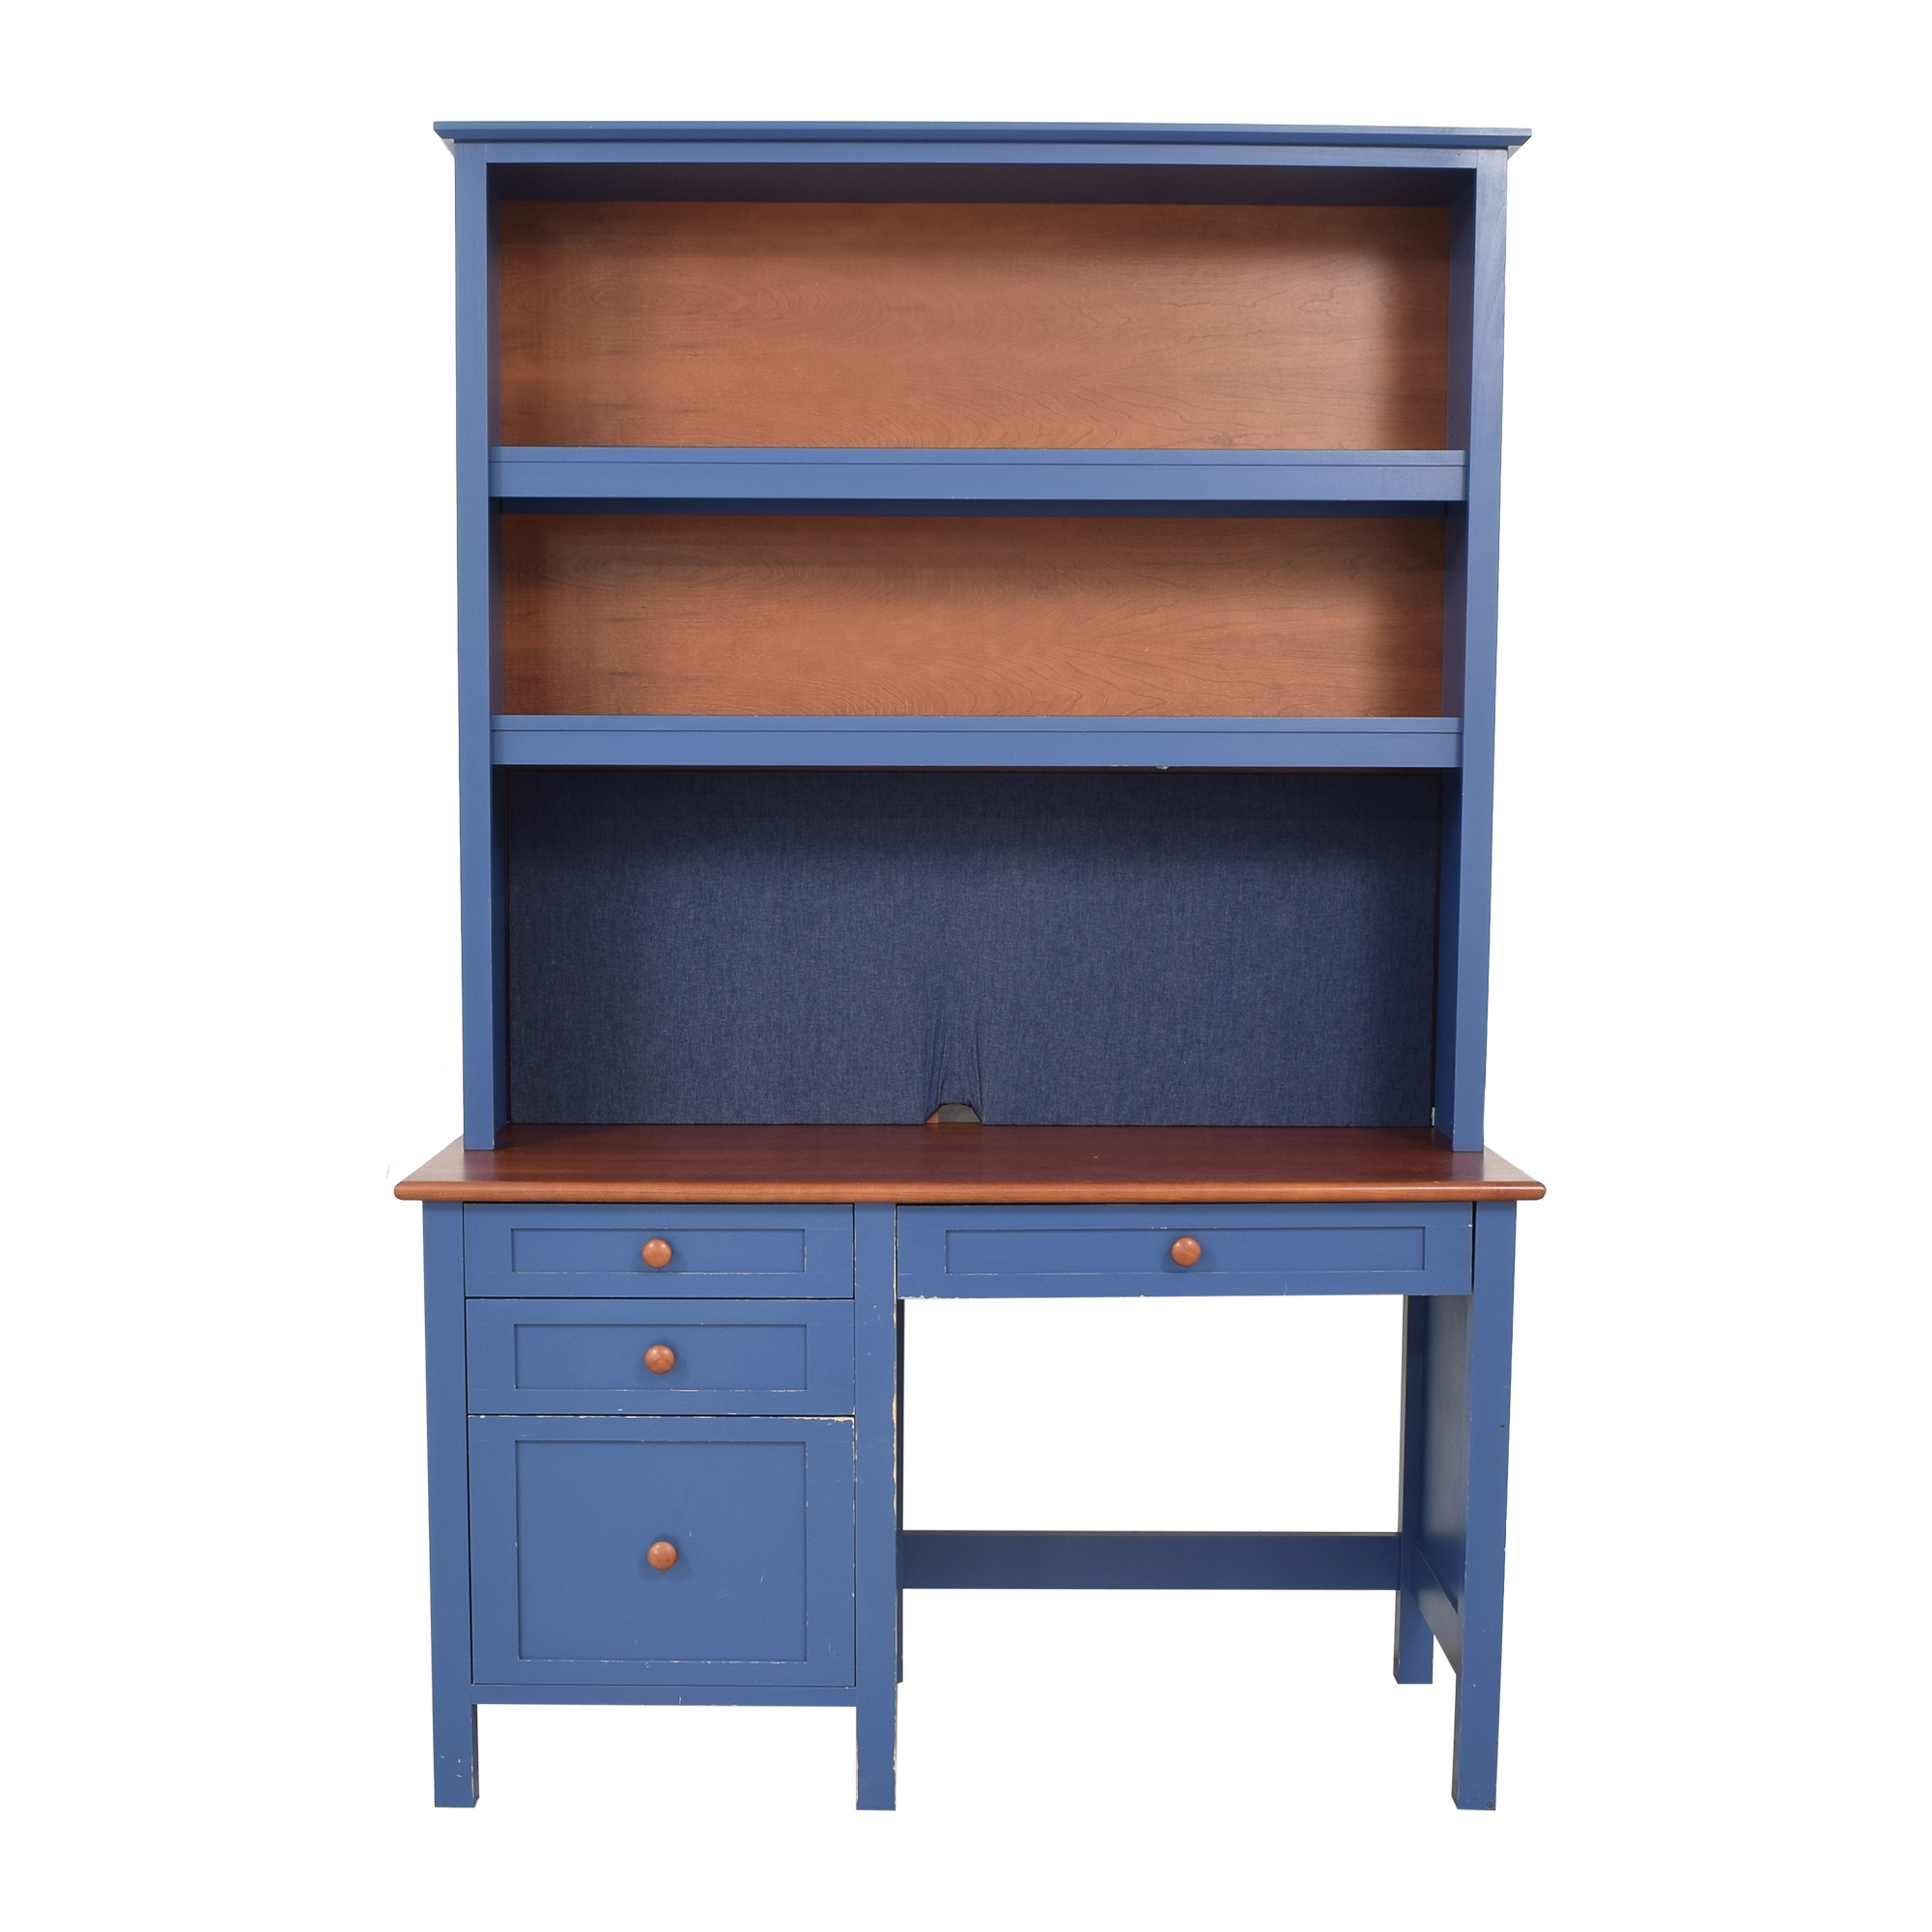 Four Drawer Desk with Hutch second hand